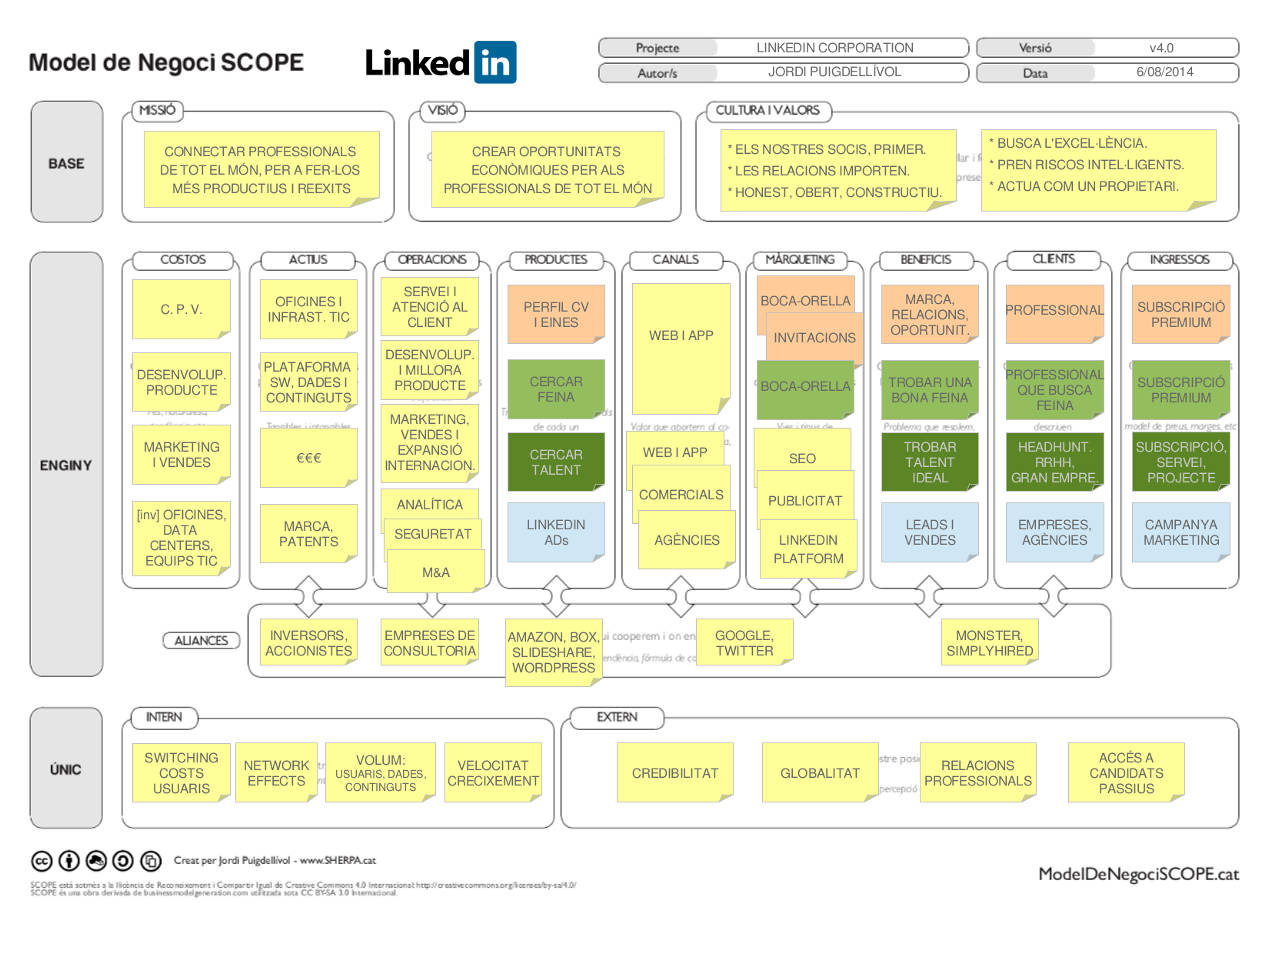 Linkedin - Model de Negoci SCOPE